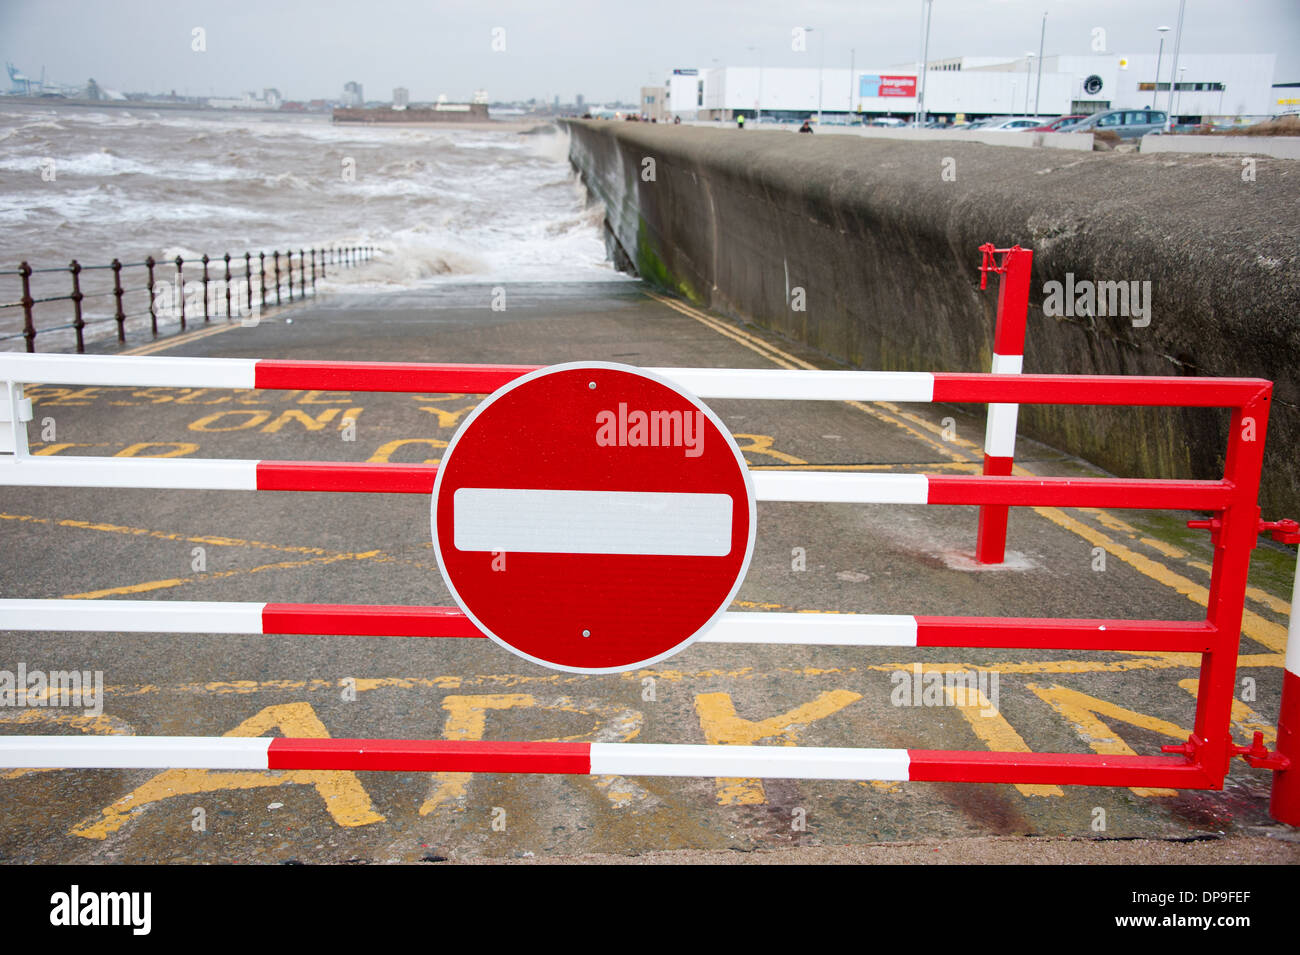 No entry slipway tide coming in stormy dangerous - Stock Image